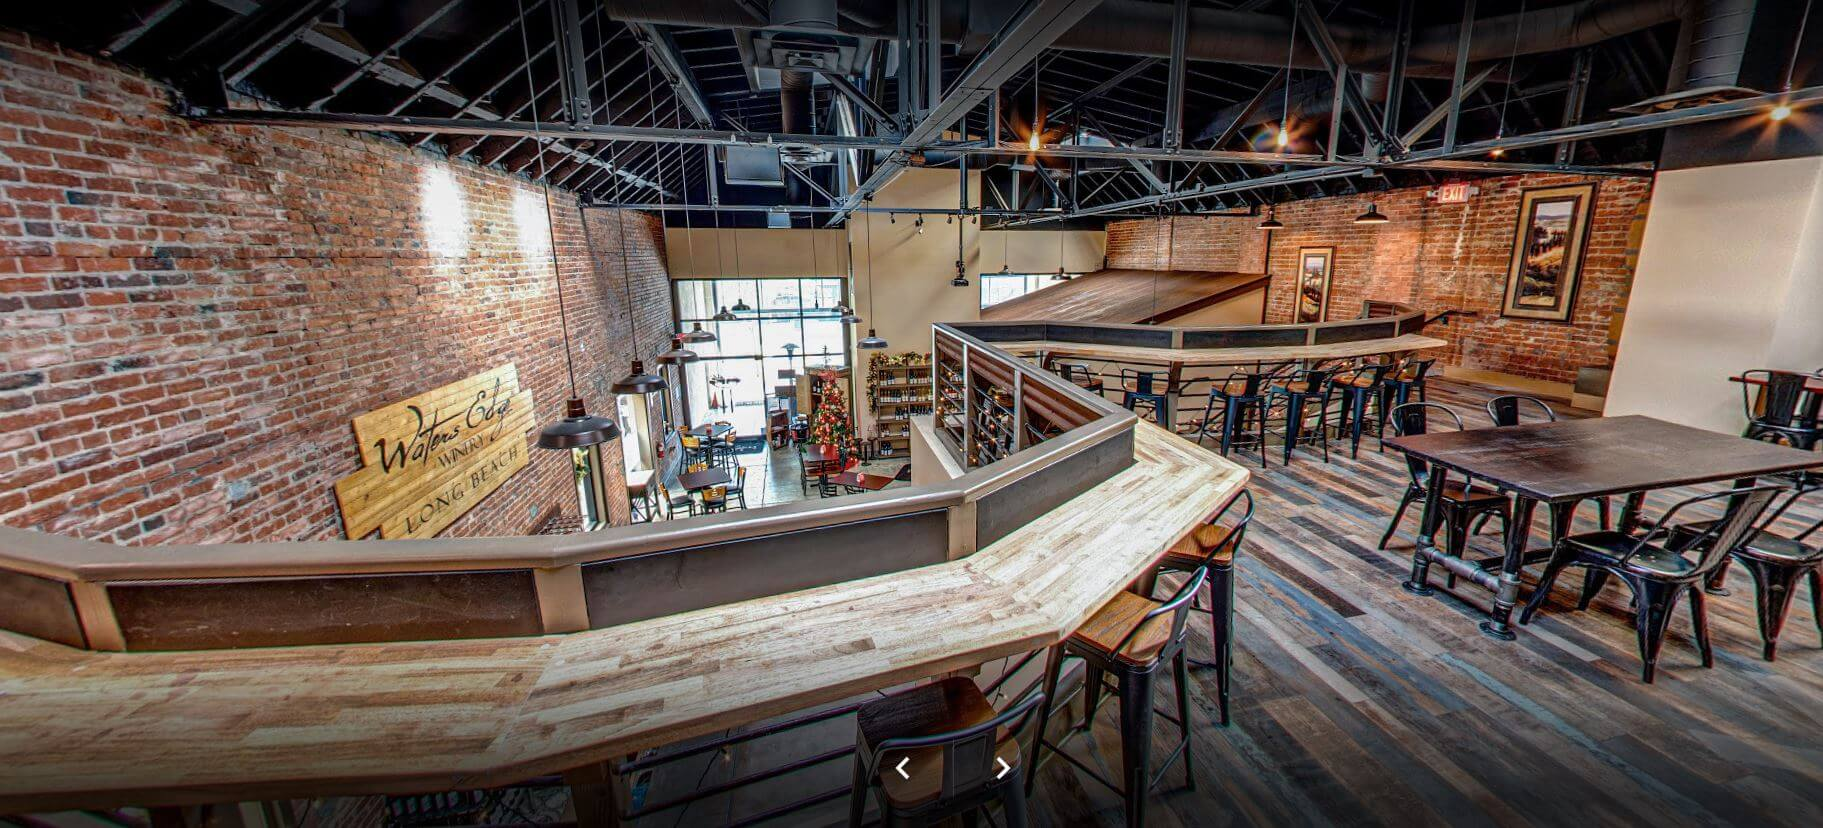 Second story view of Shoreline Cellars